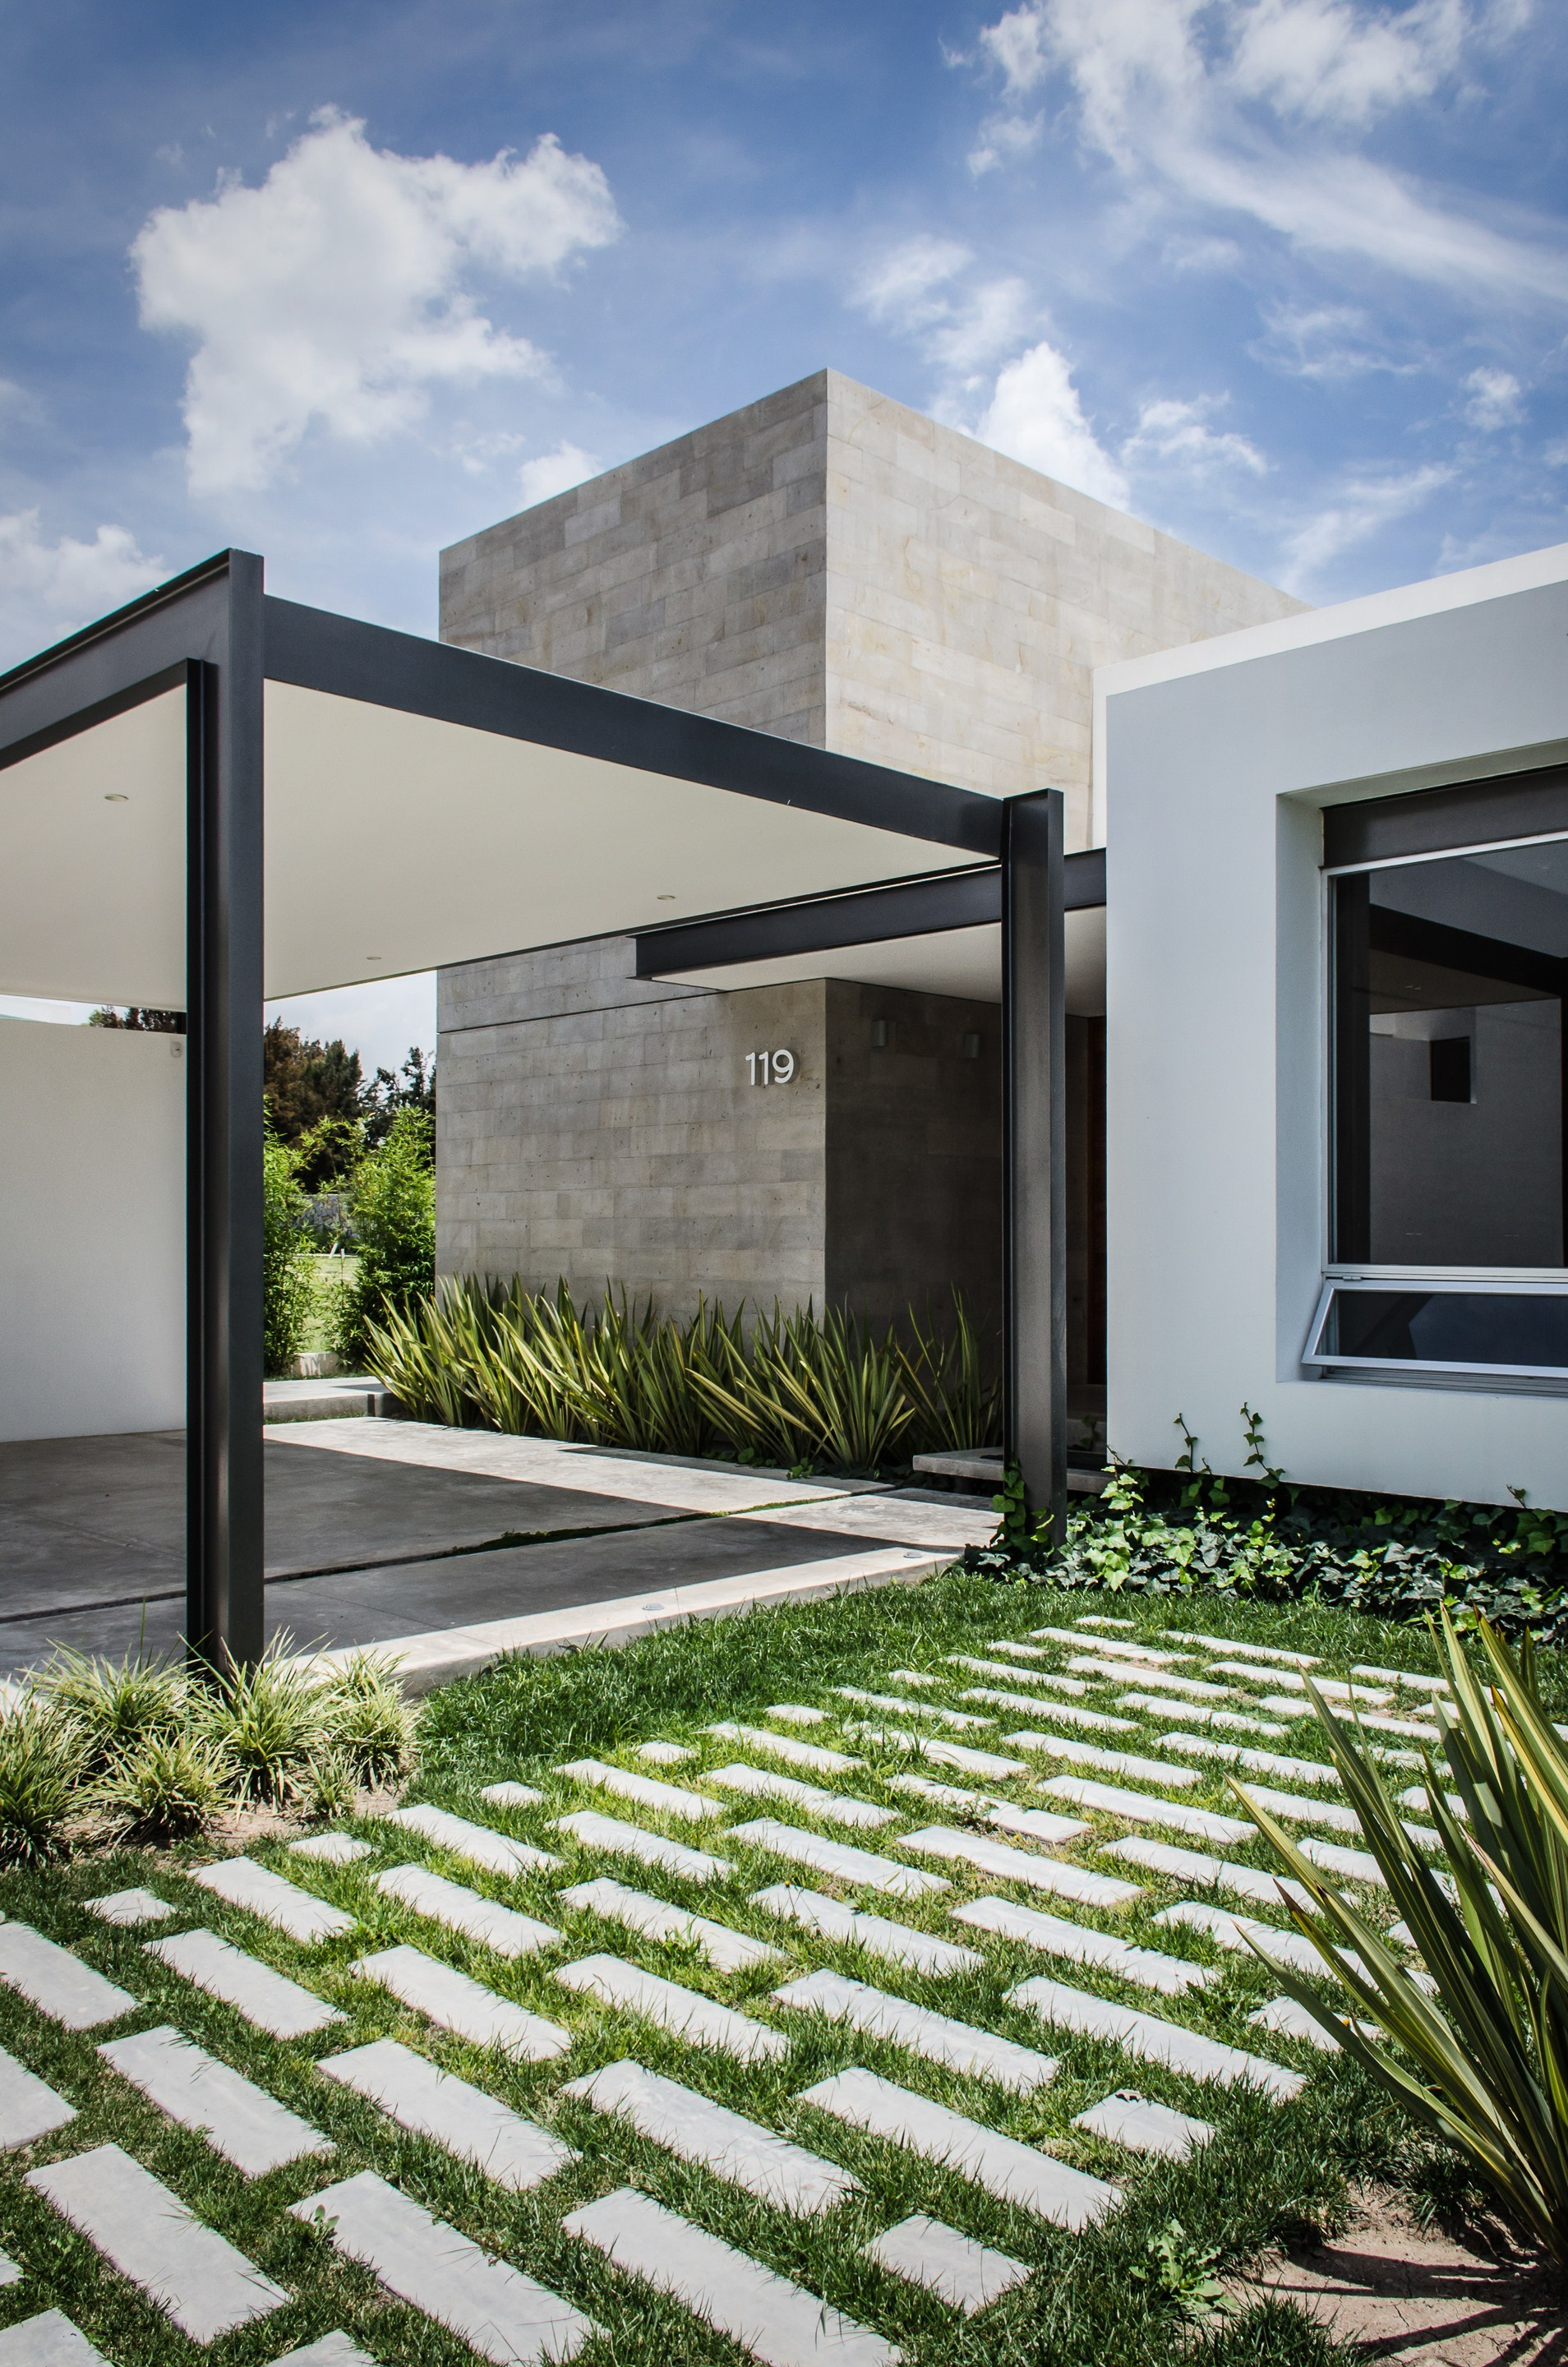 Gallery of t02 adi arquitectura y dise o interior 2 for Adi arquitectura y diseno interior